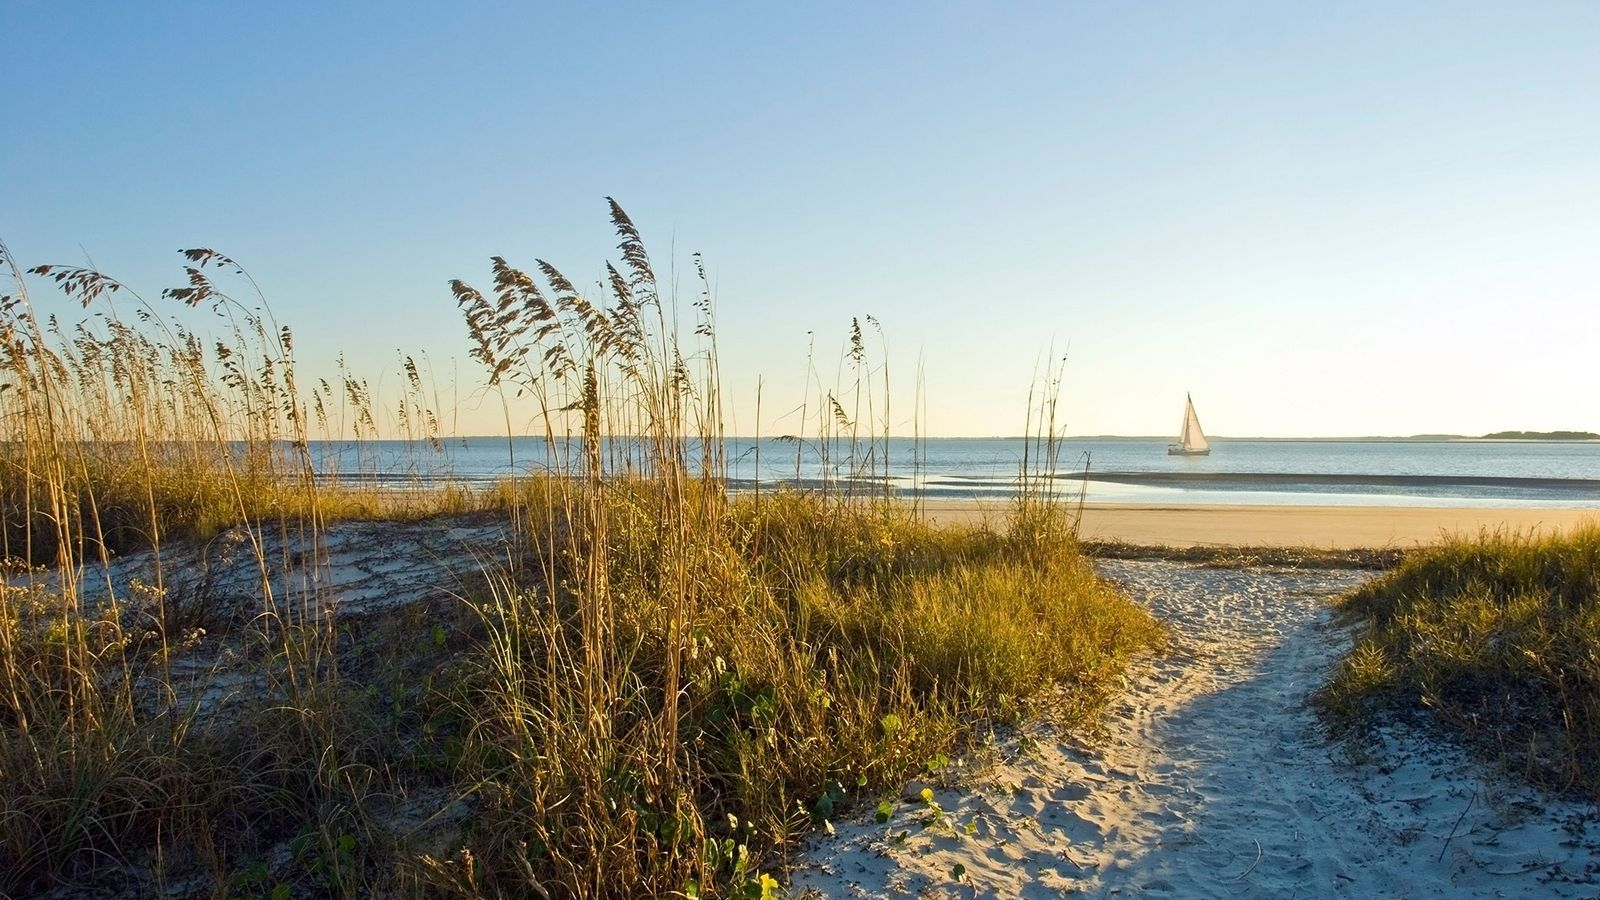 Sandy paths between the dunes lead down to the beach for scenic views.